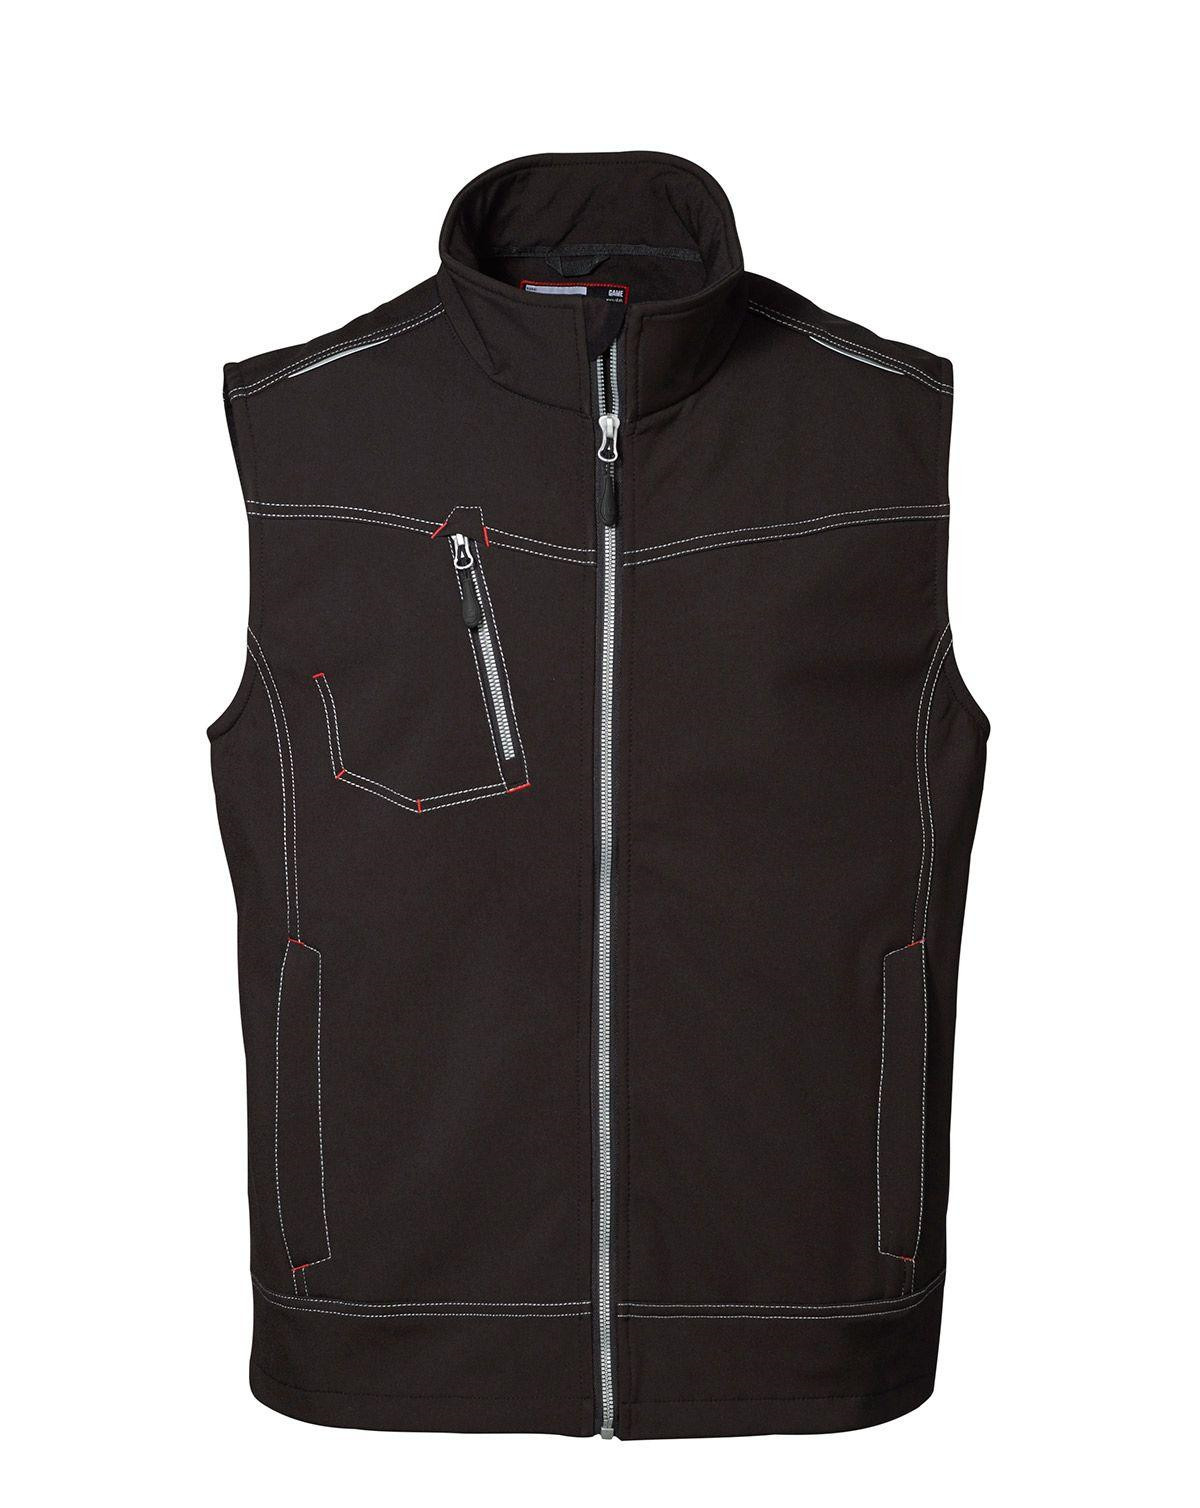 Image of   ID Softshell Vest (Sort, M)